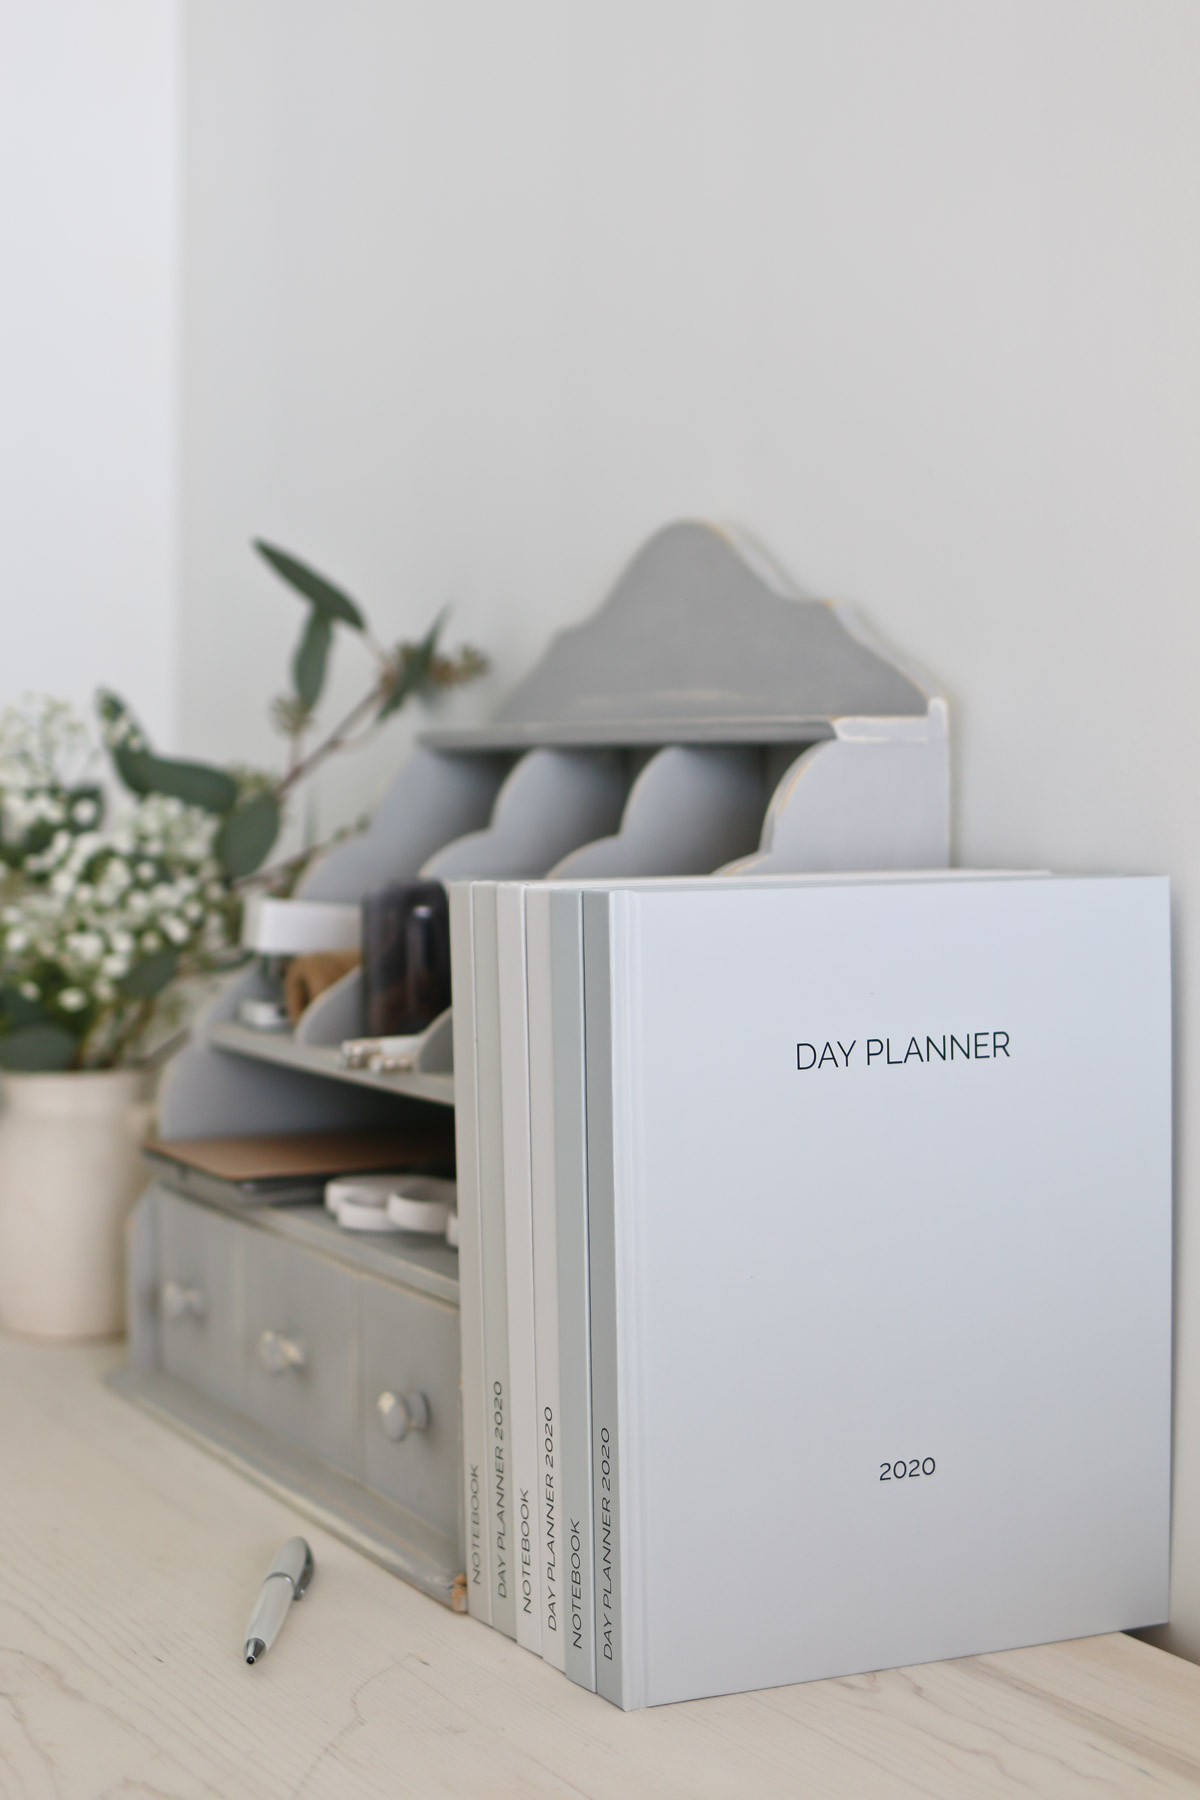 3 Tips for Organizing your Days